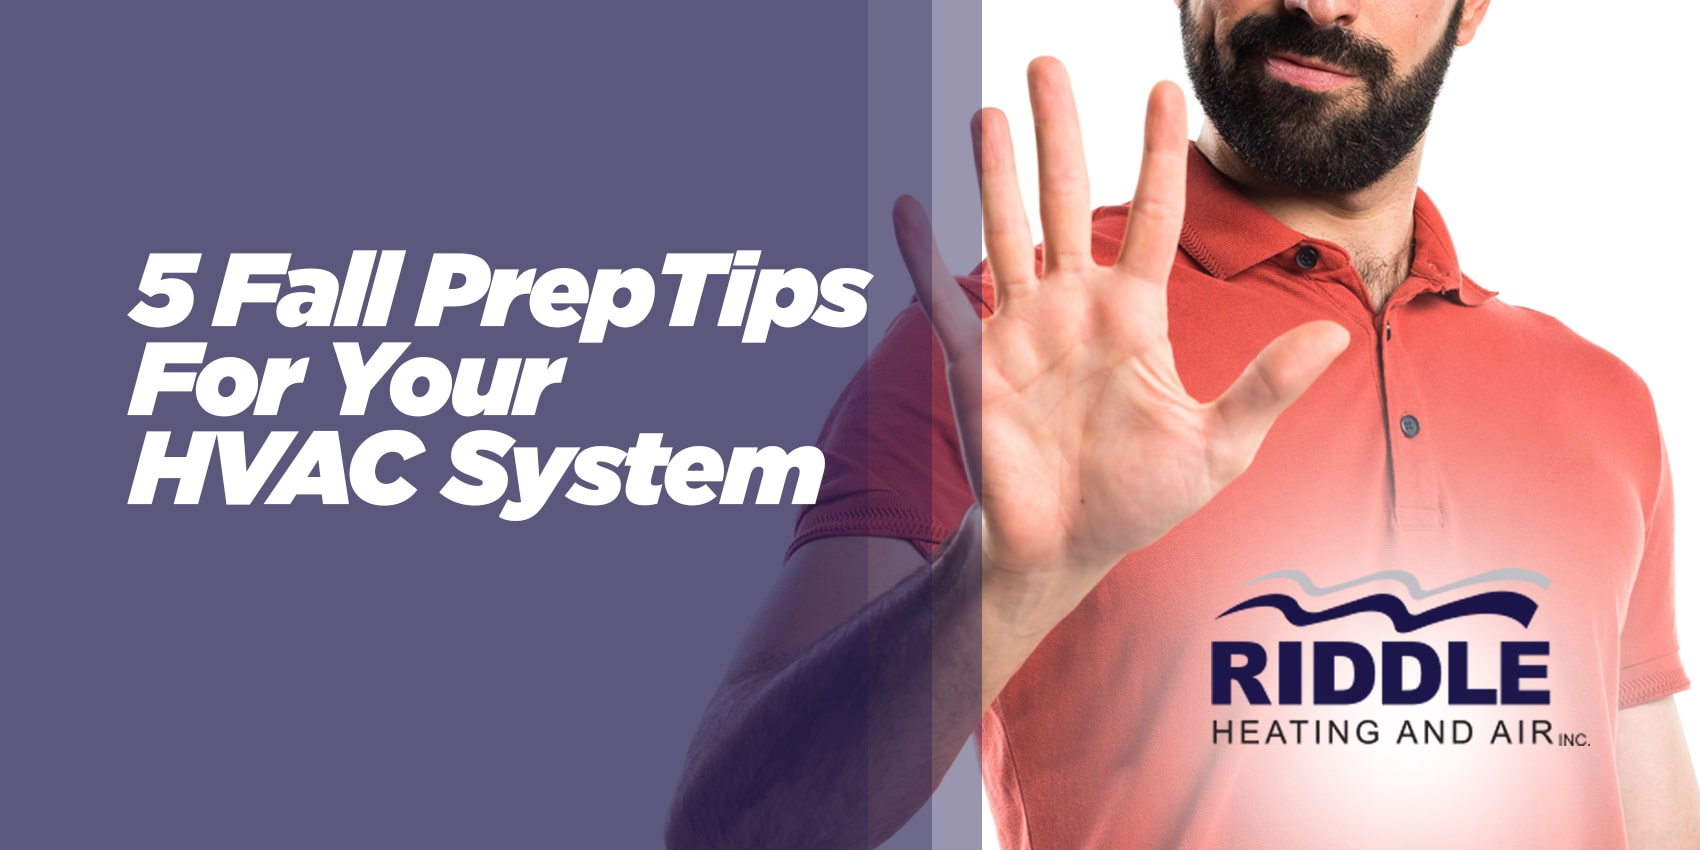 5 Fall Prep Tips For Your HVAC System